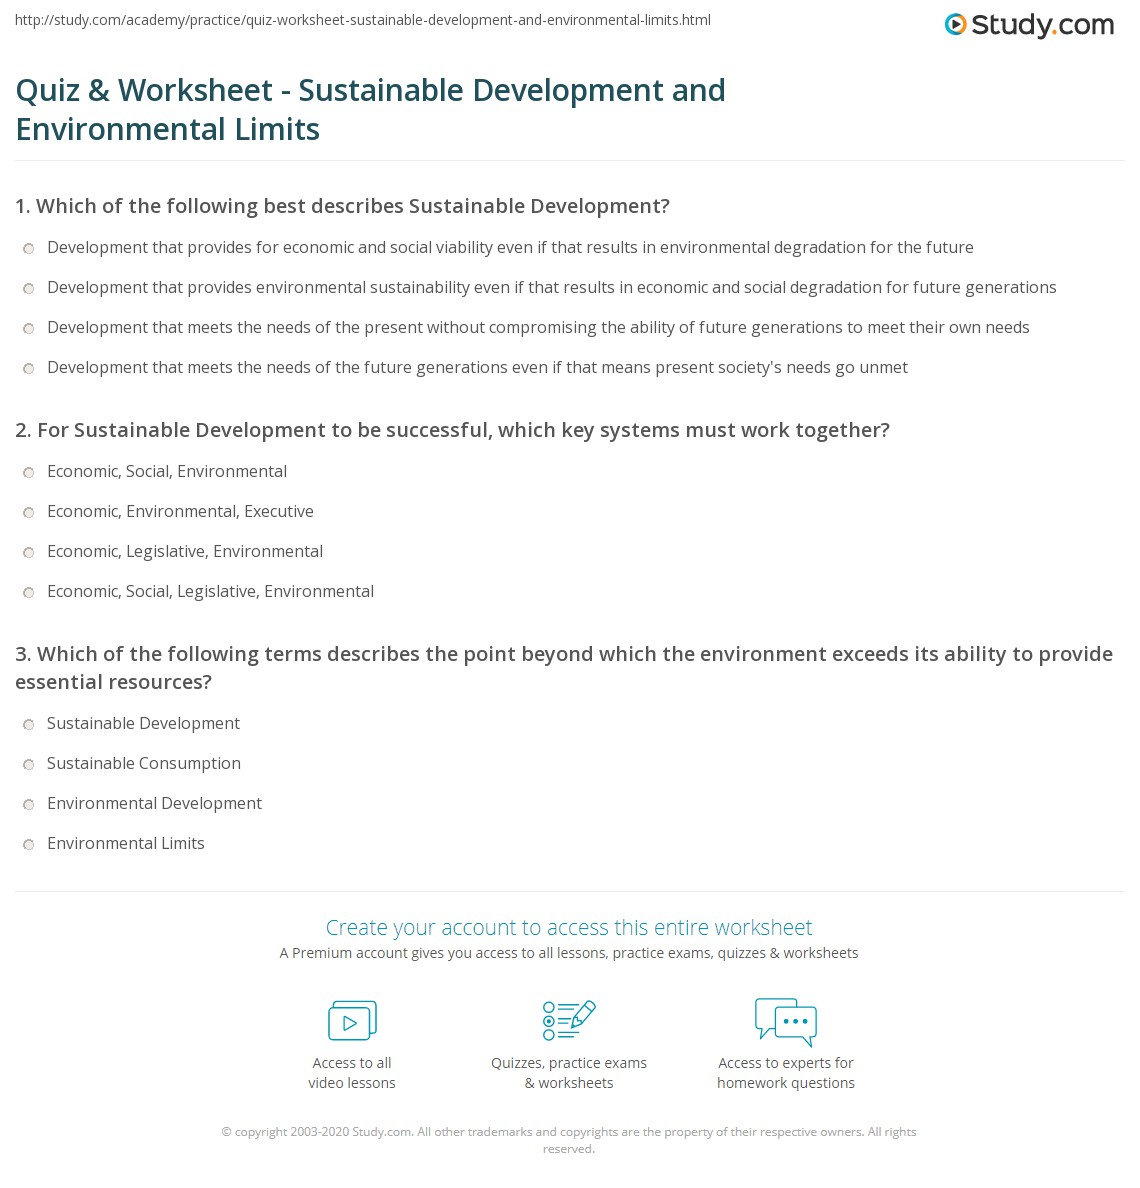 Quiz & Worksheet Sustainable Development and Environmental